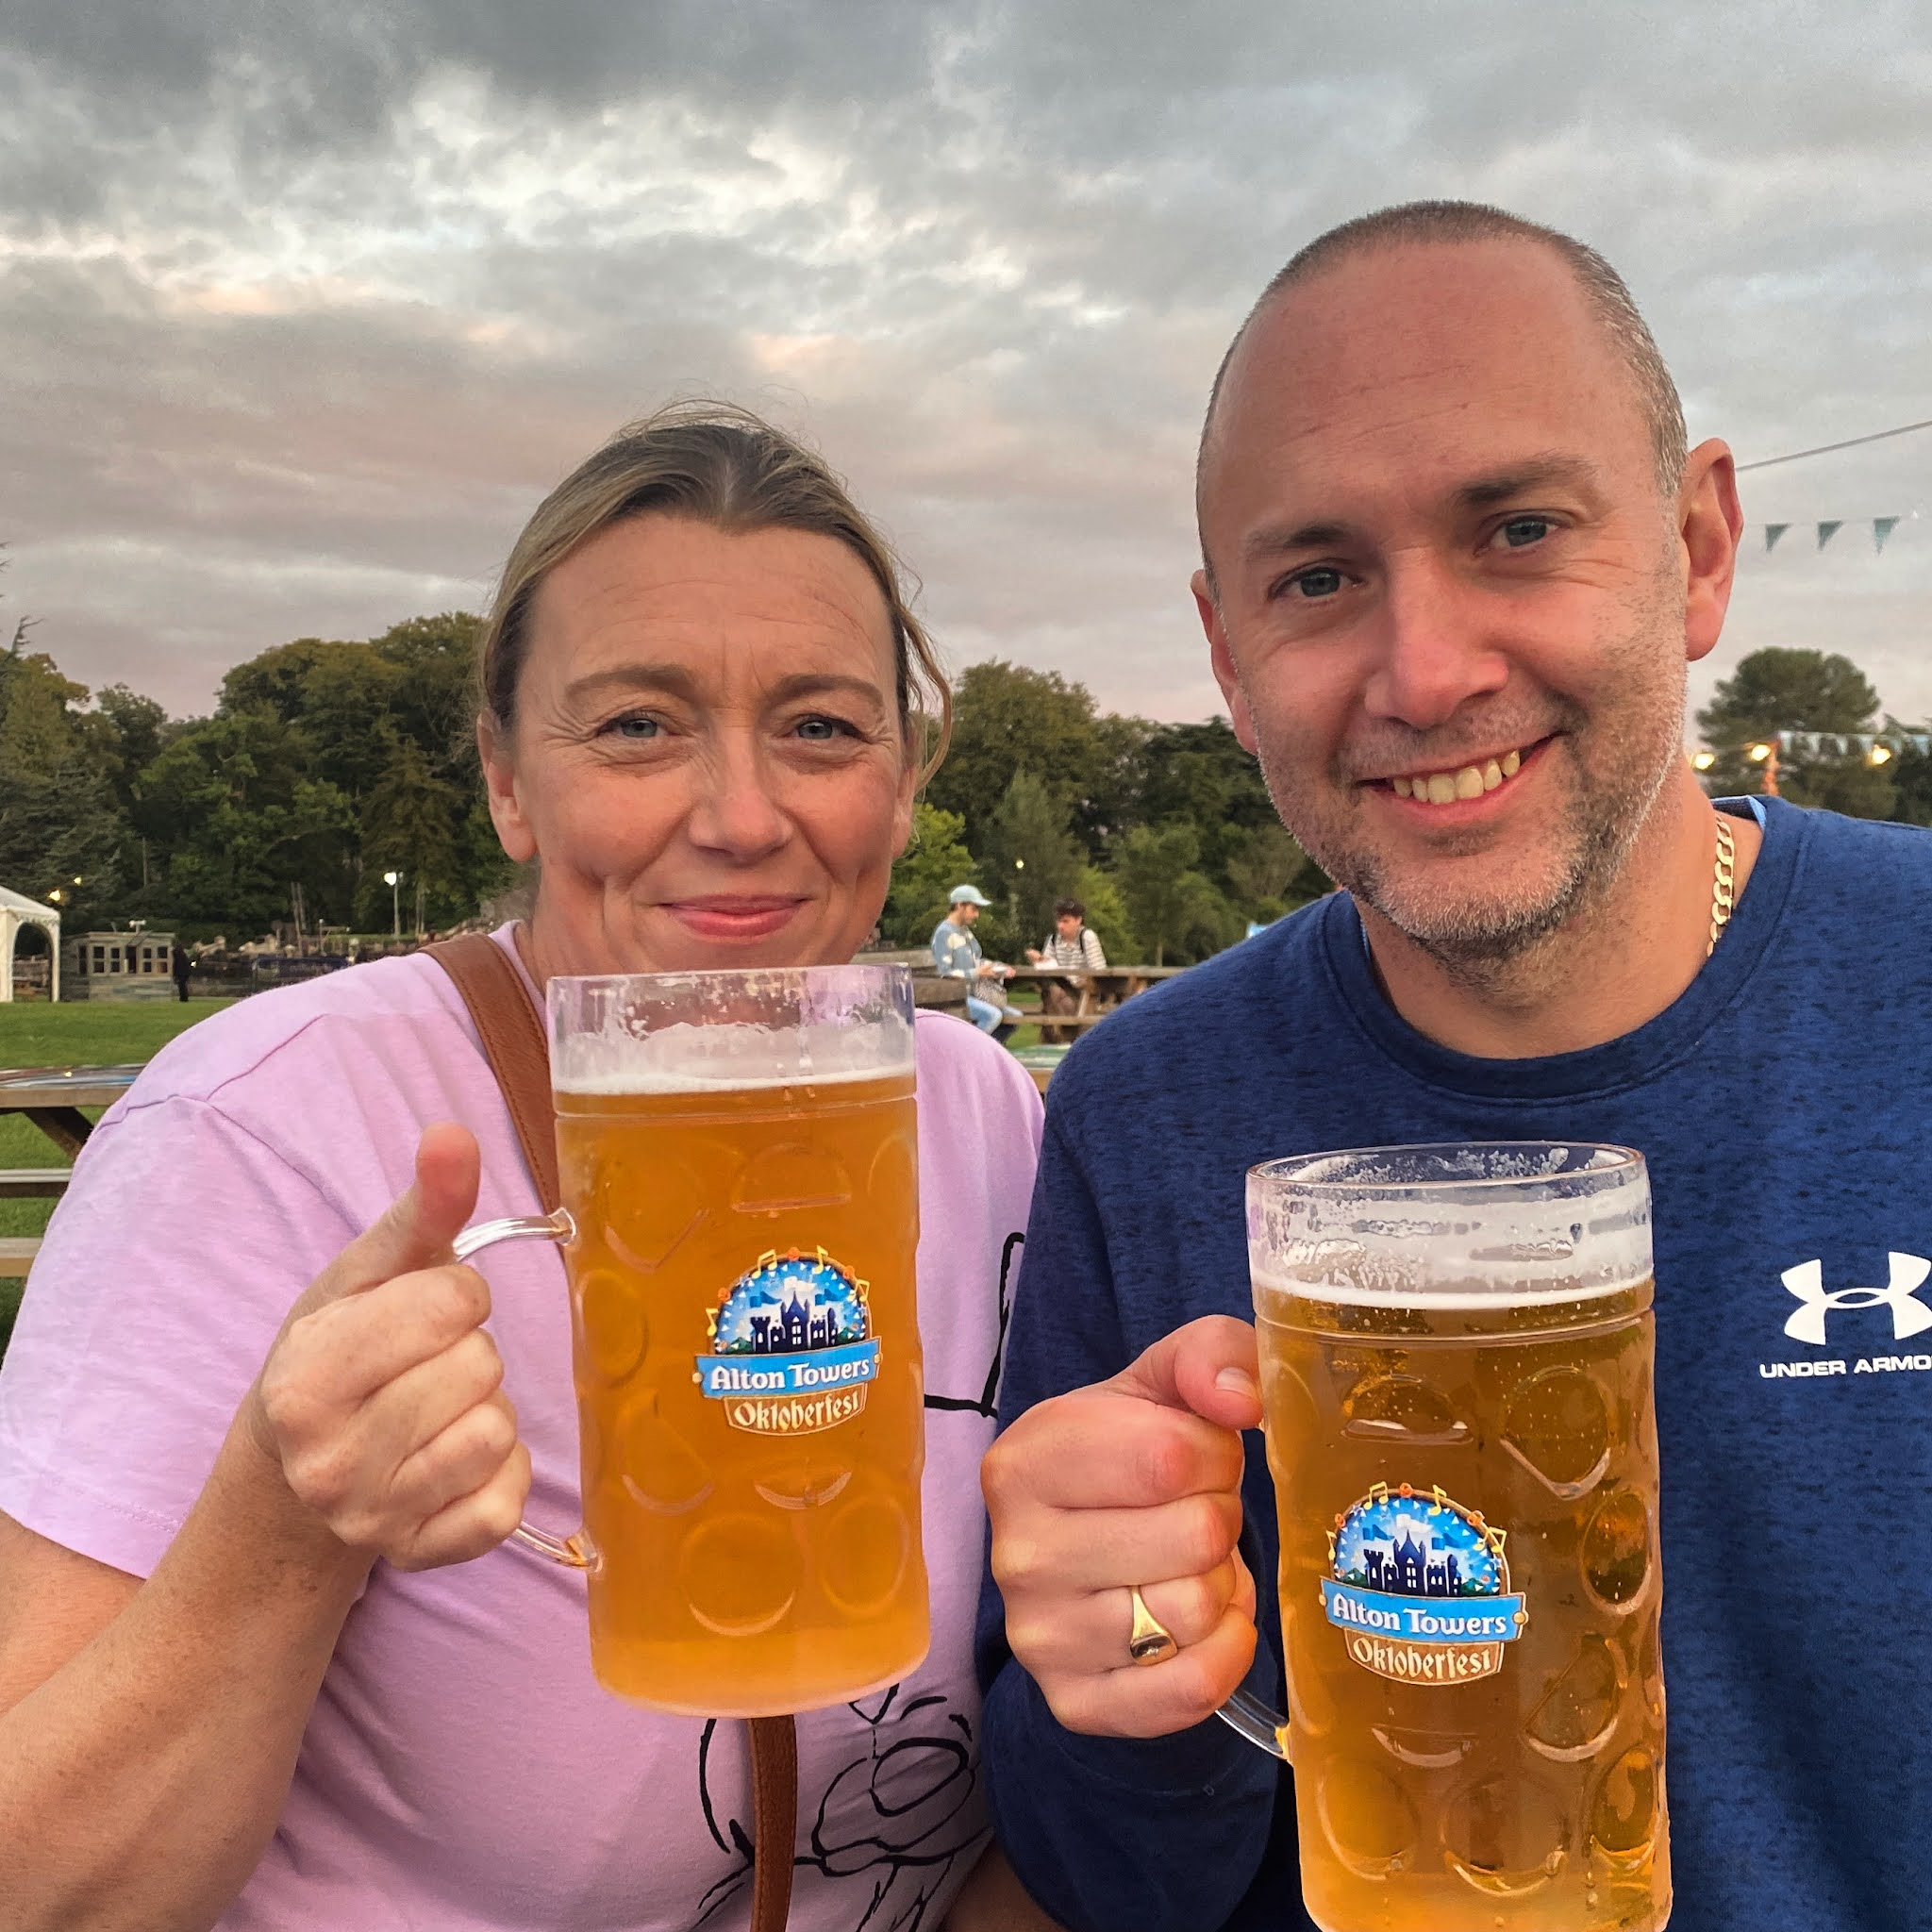 man and woman having a stein of lager